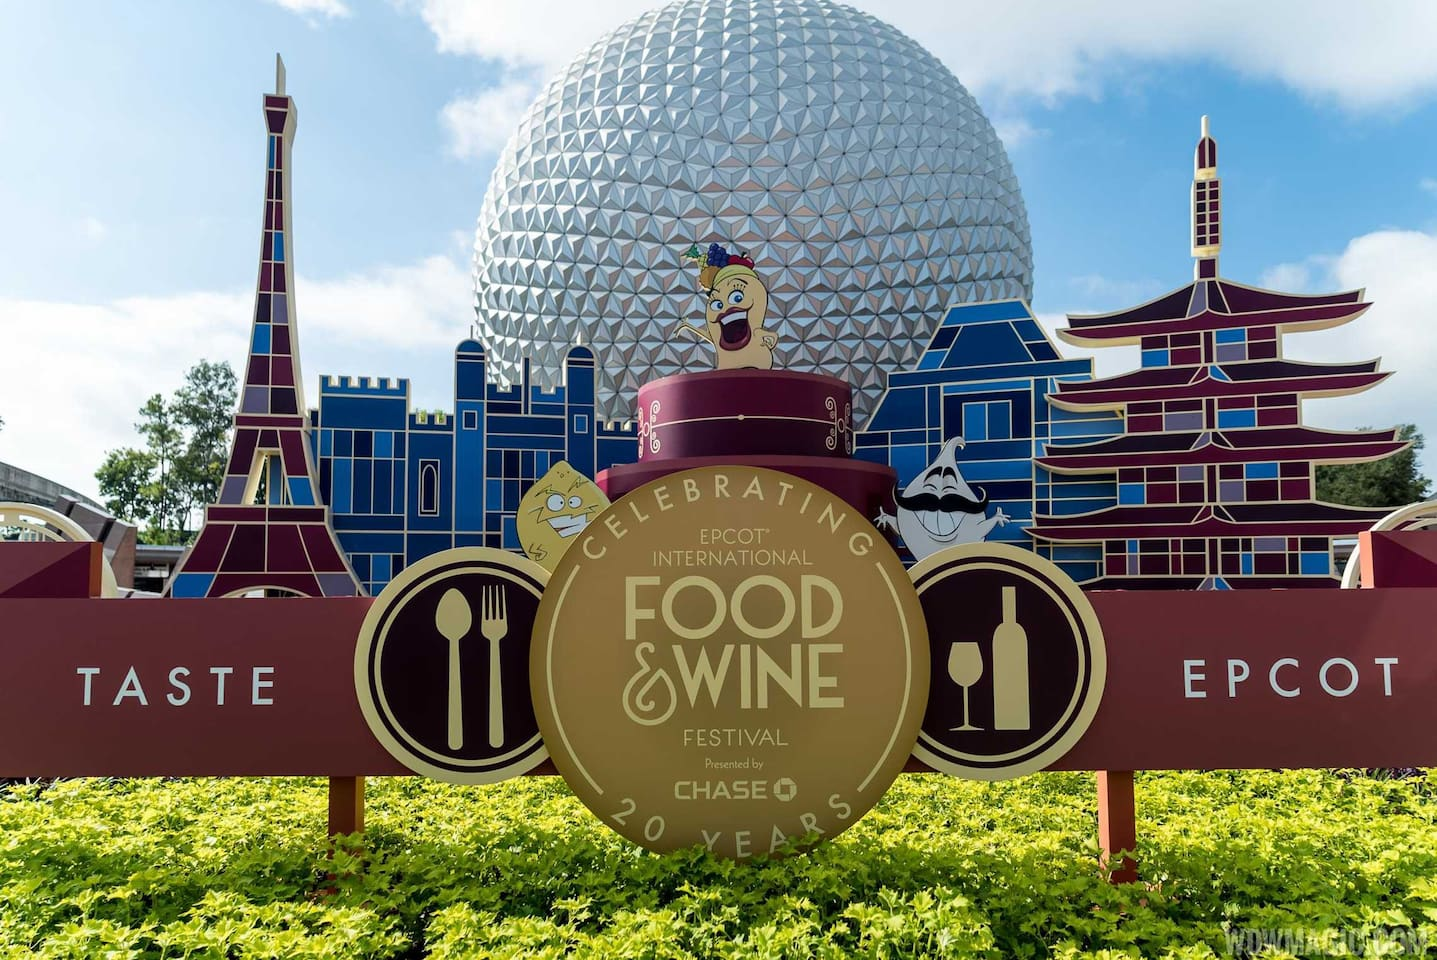 Come and enjoy Epcot's Food & Wine Festival